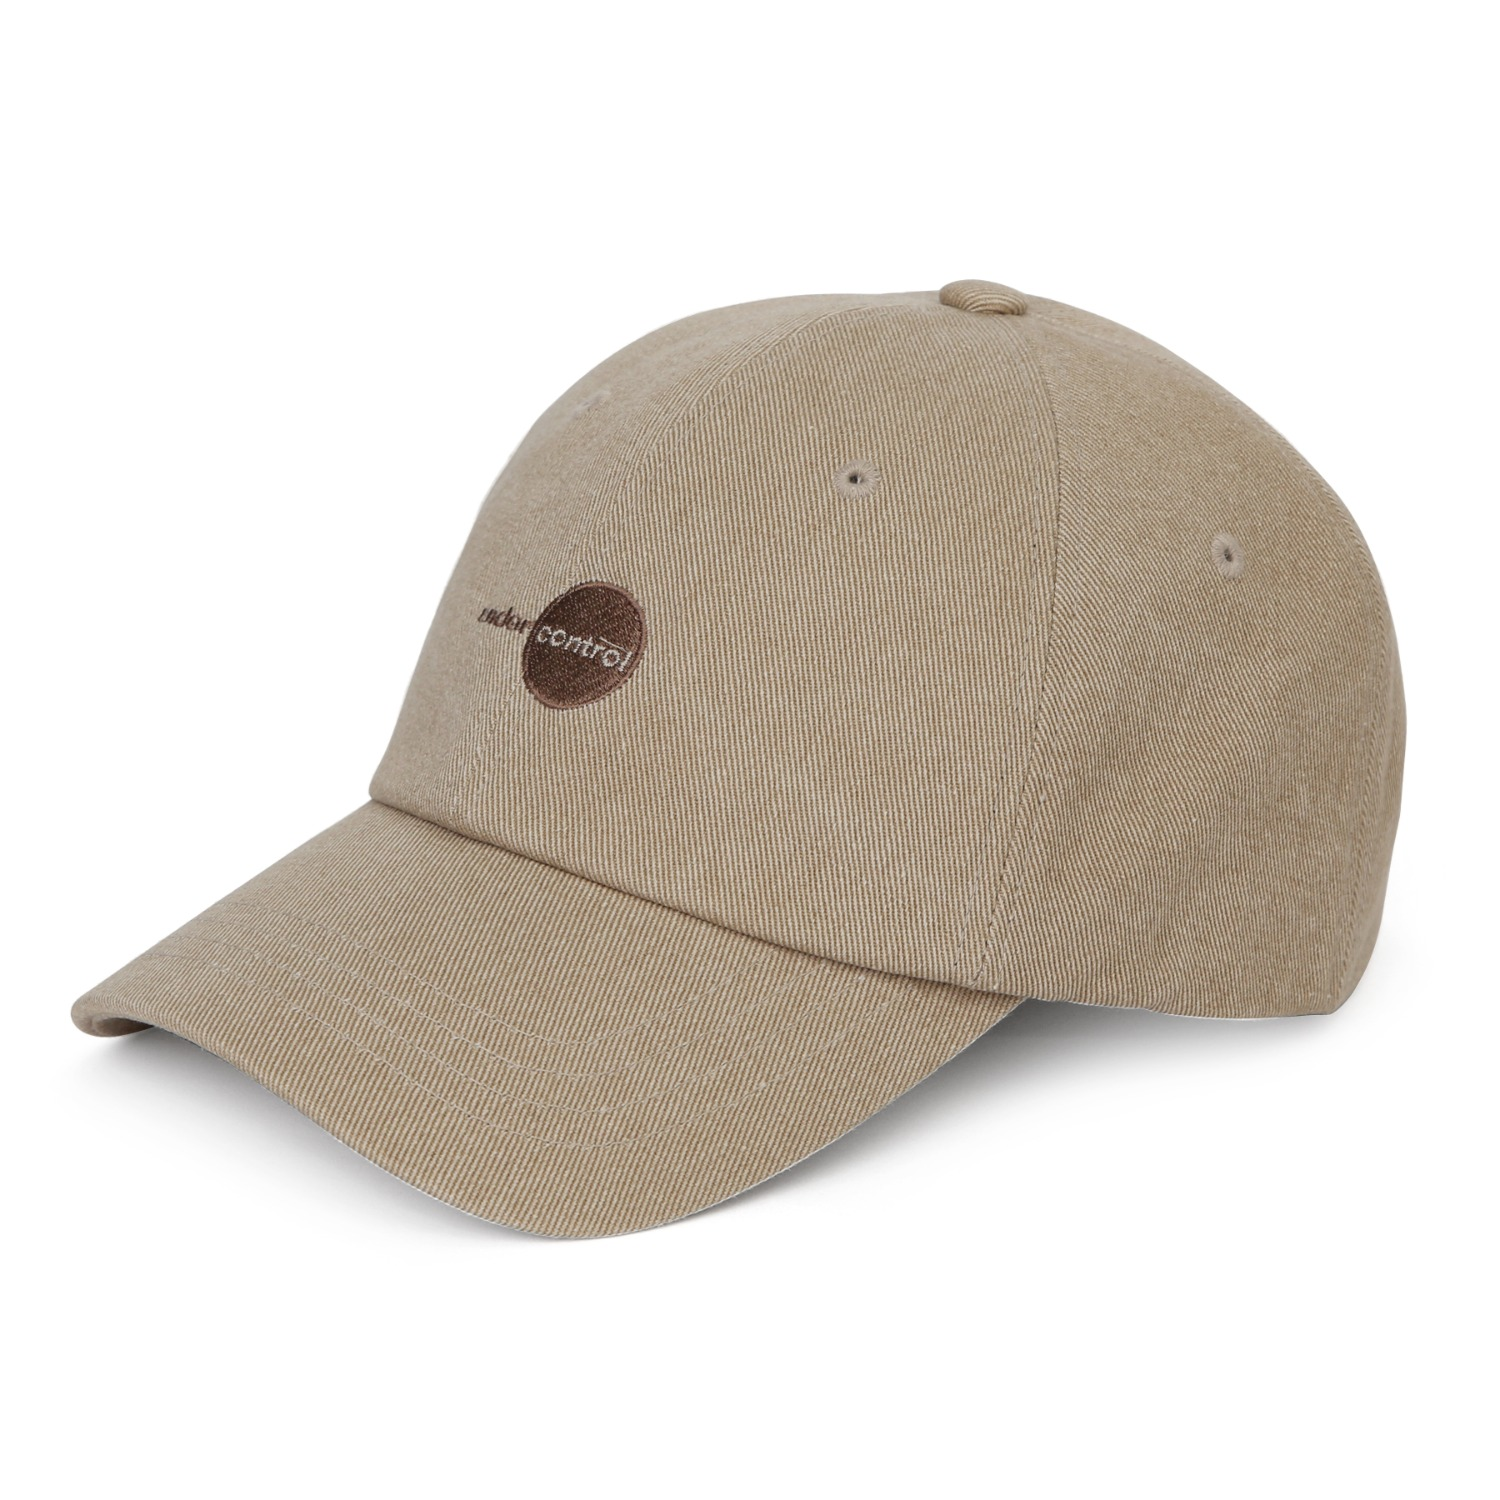 ROUND LOGO / AUTHENTIC B B / CATION DESERT